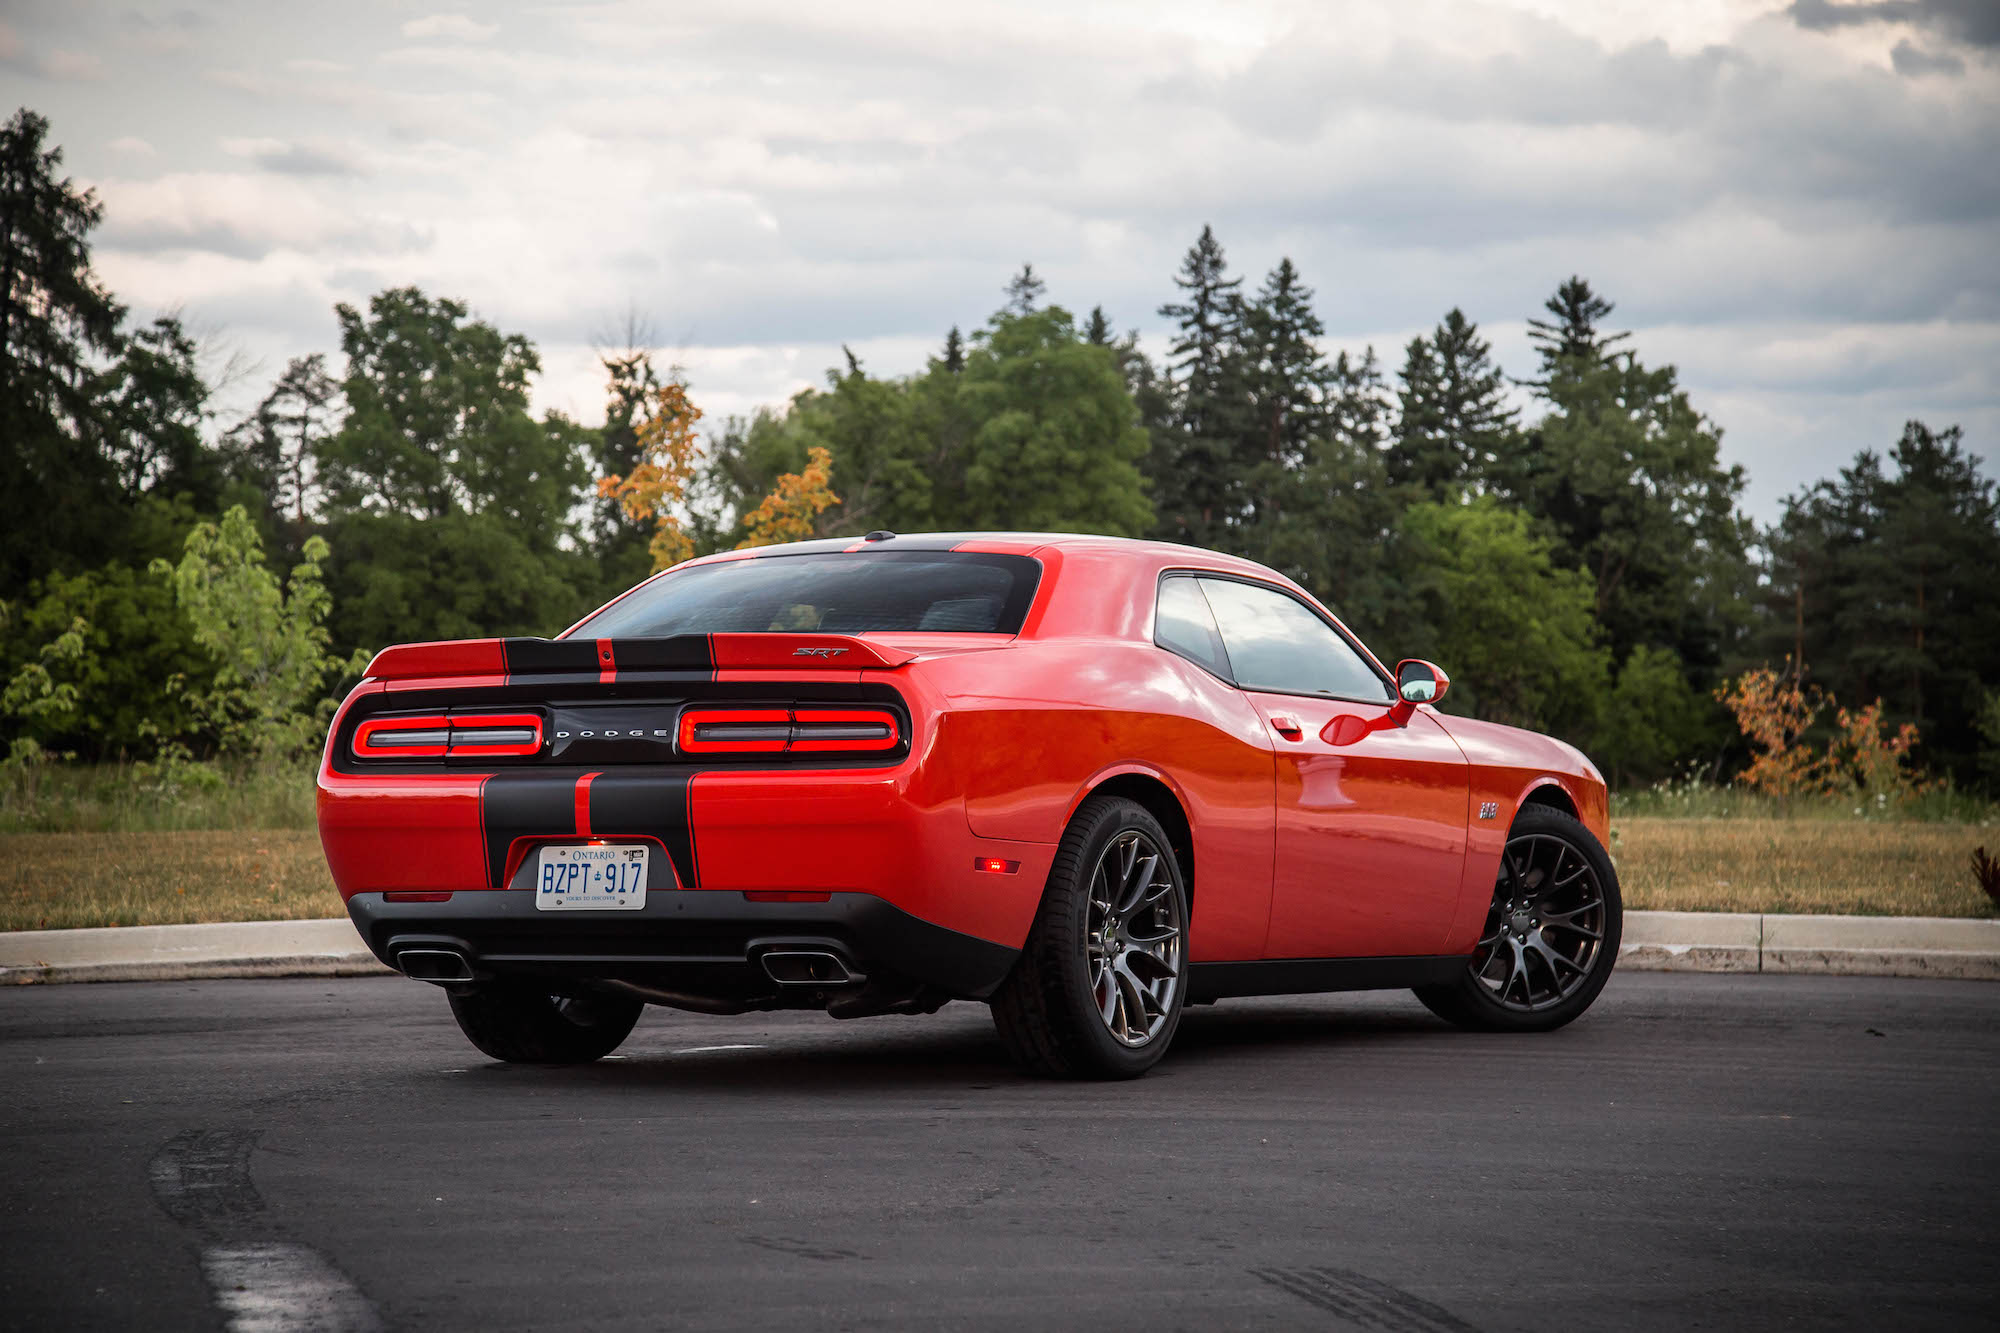 Pirelli P Zero >> Review: 2016 Dodge Challenger SRT 392 | Canadian Auto Review